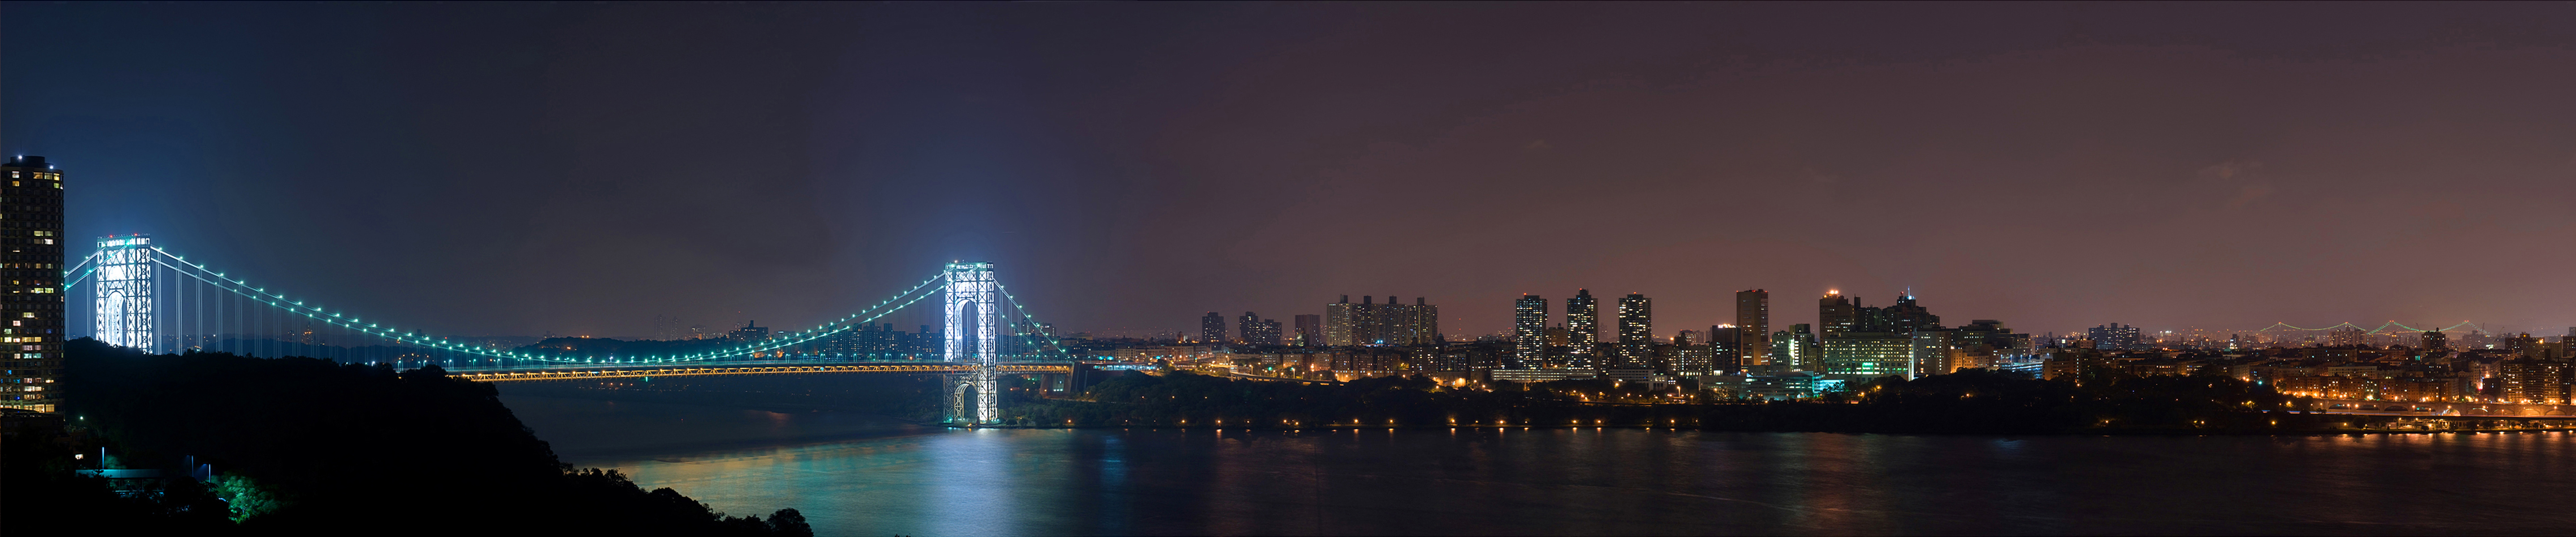 wallpaper new york george washington bridge by night triple monitor